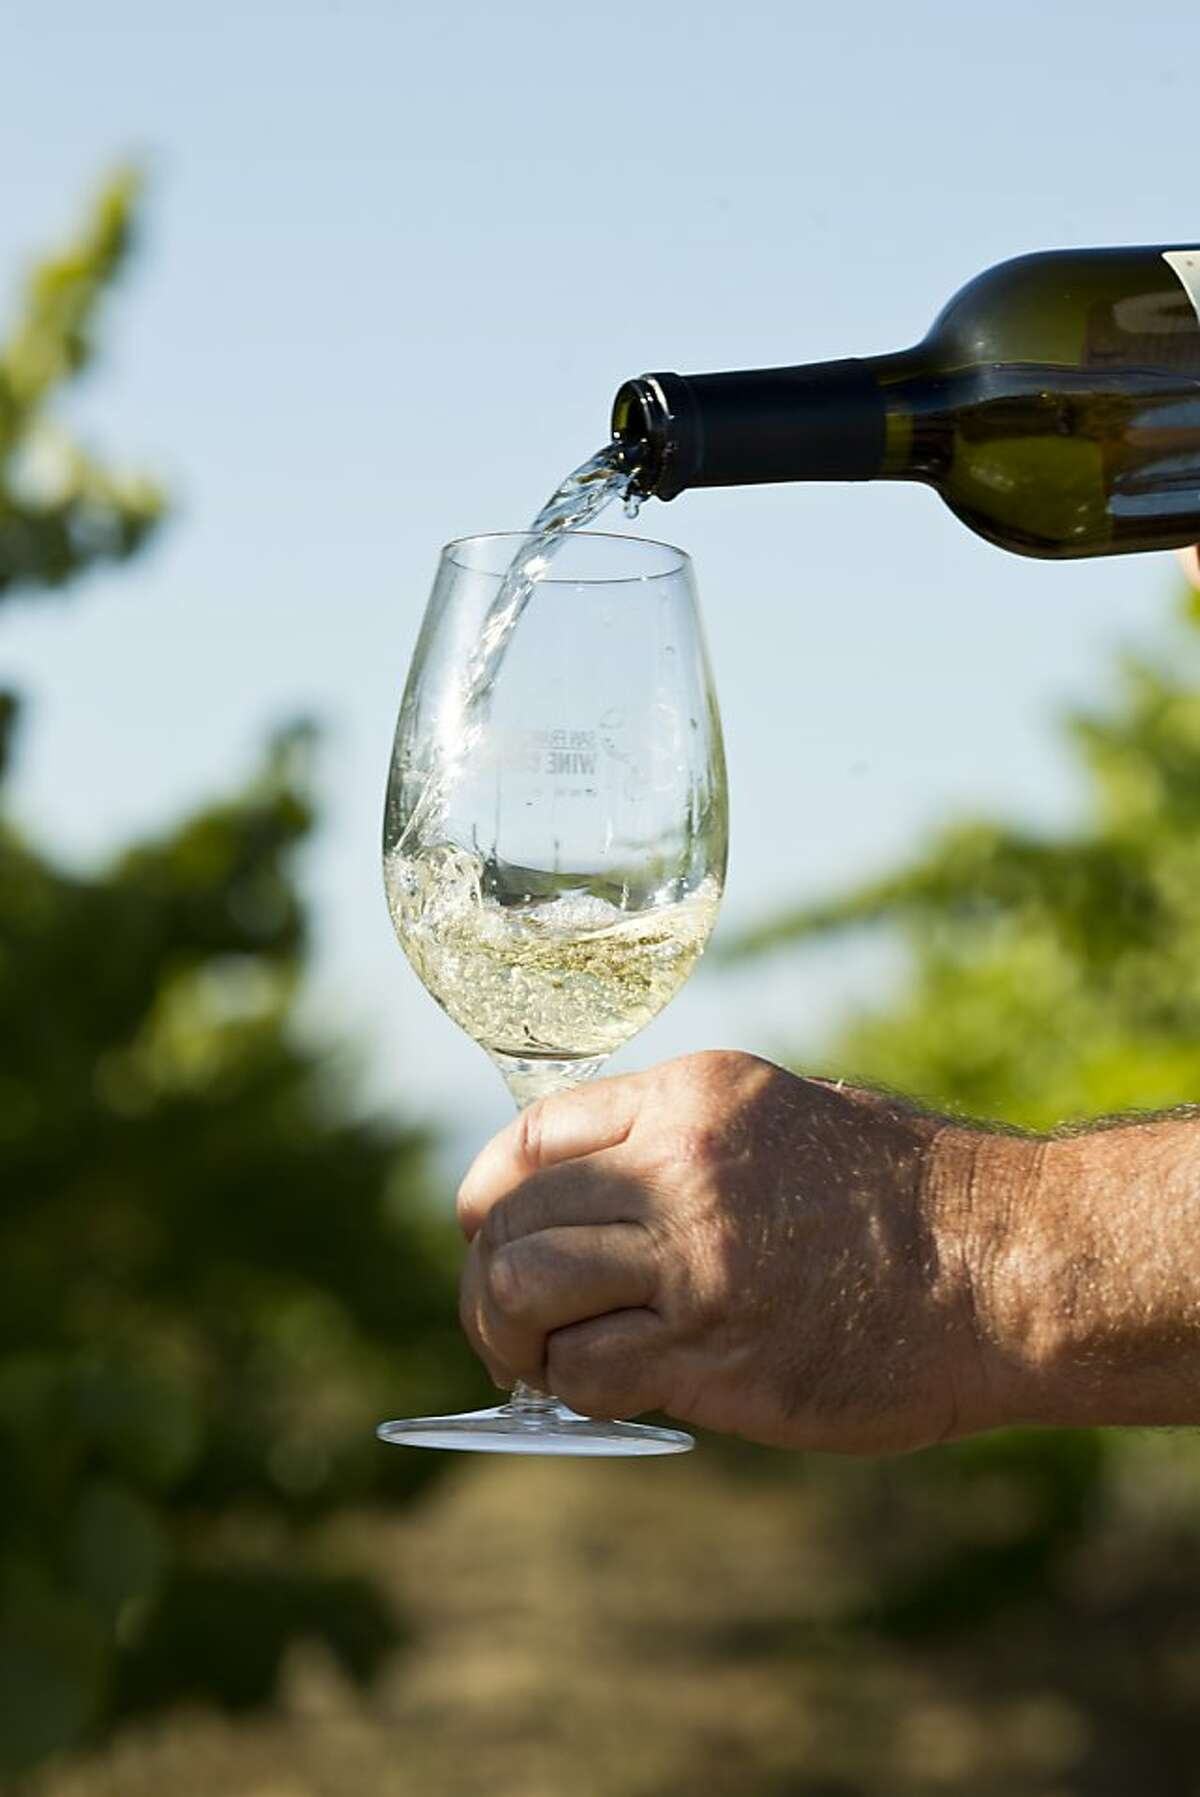 Peter Fanucchi, of Fanucchi Vineyards, pours a glass of his Trousseau Gris in Fulton, Calif., Wednesday, August 14, 2013.